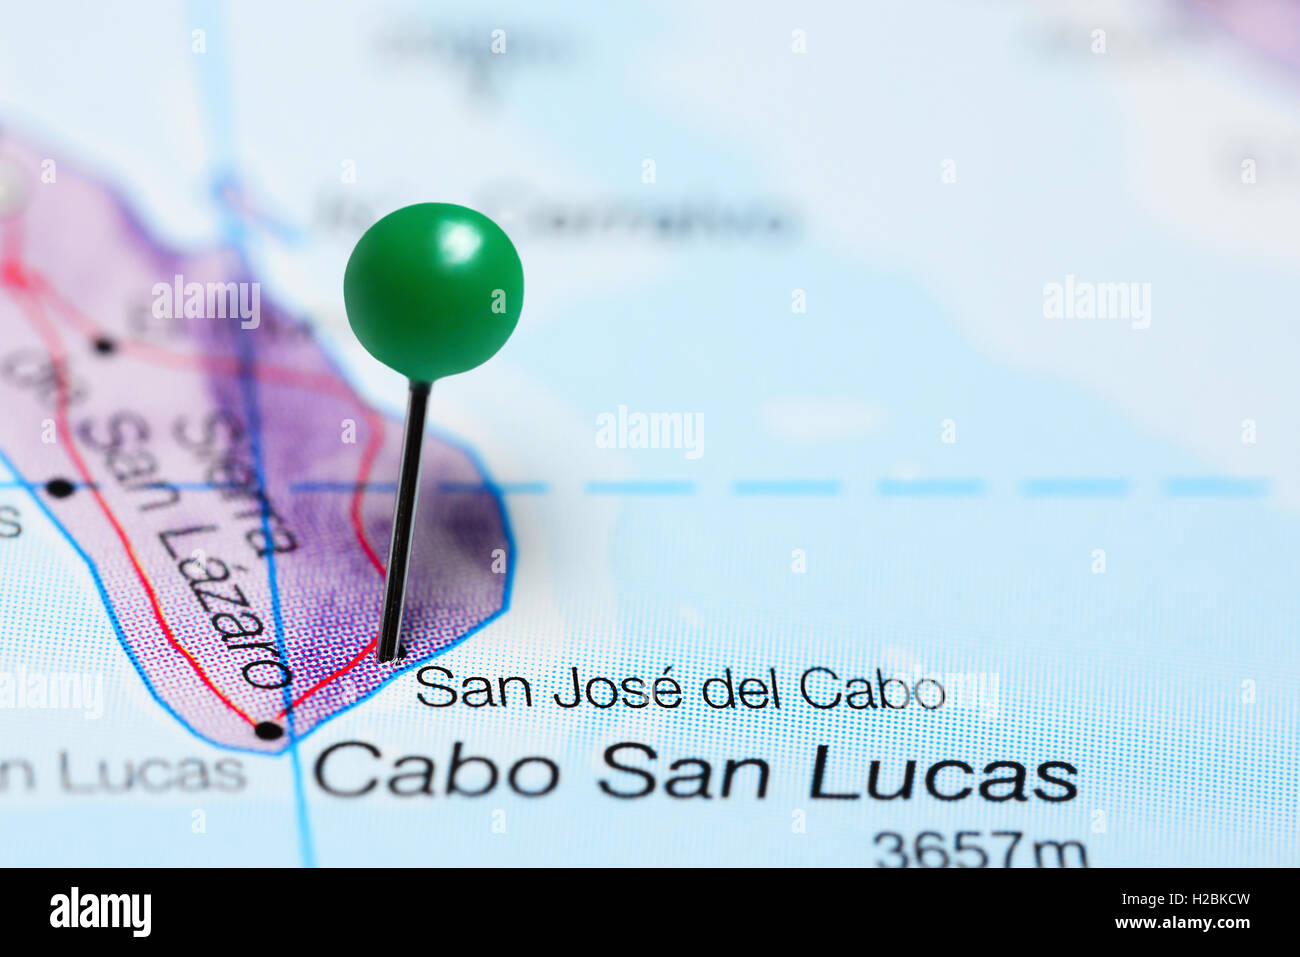 San Jose Cabo Mexico Map.San Jose Del Cabo Pinned On A Map Of Mexico Stock Photo 121958617